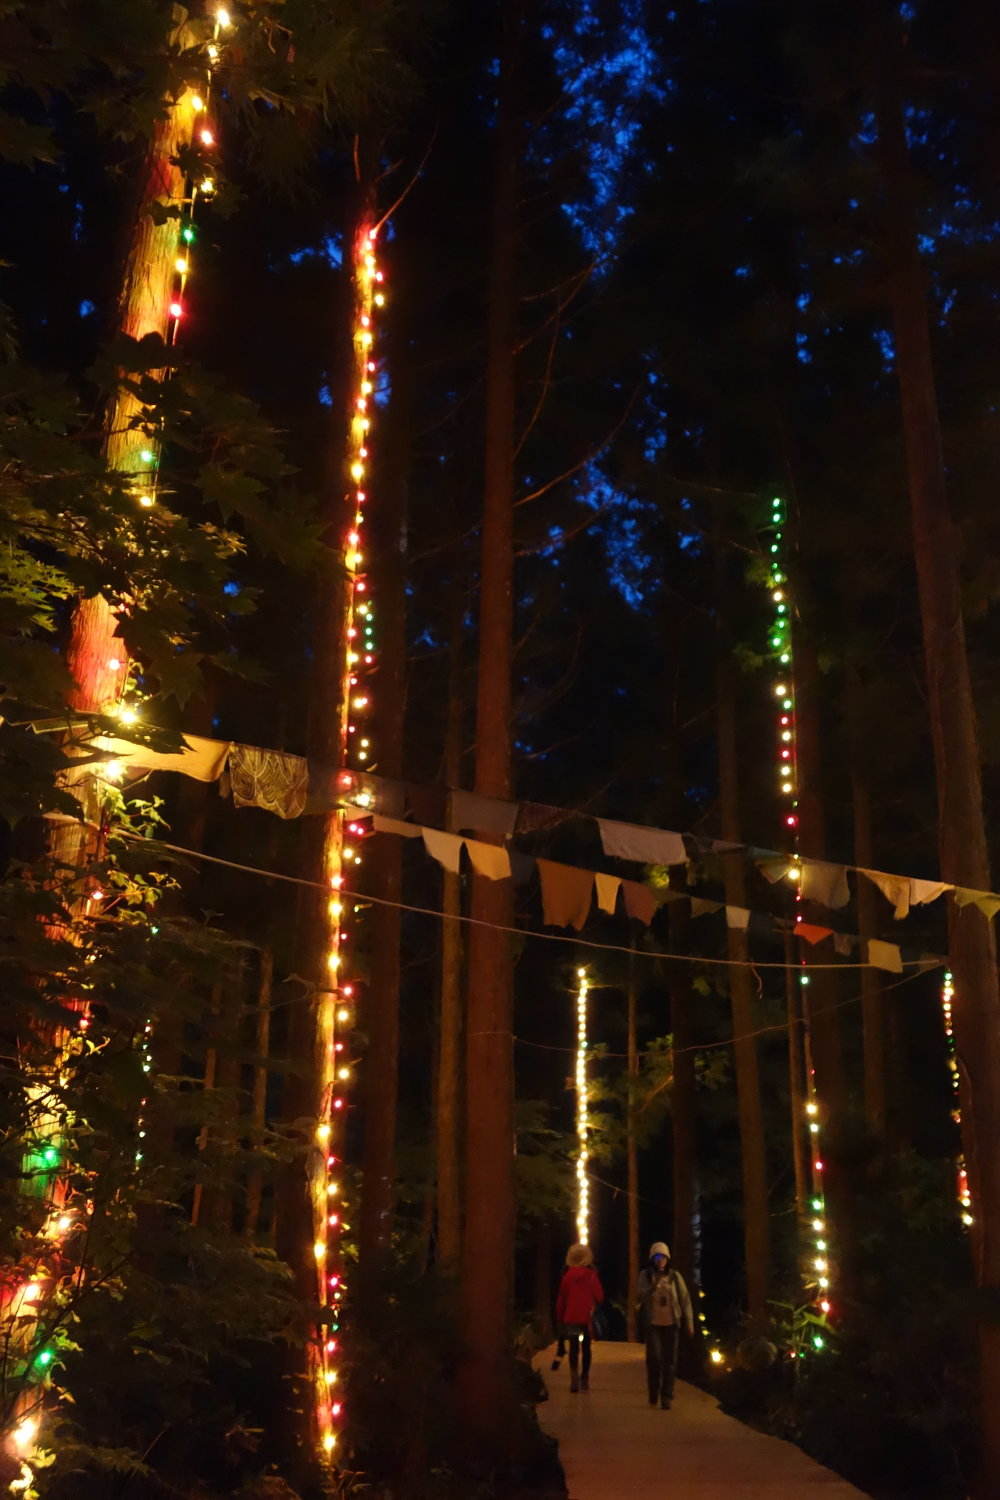 Fairytale forest at Fuji Rock: pretty cool